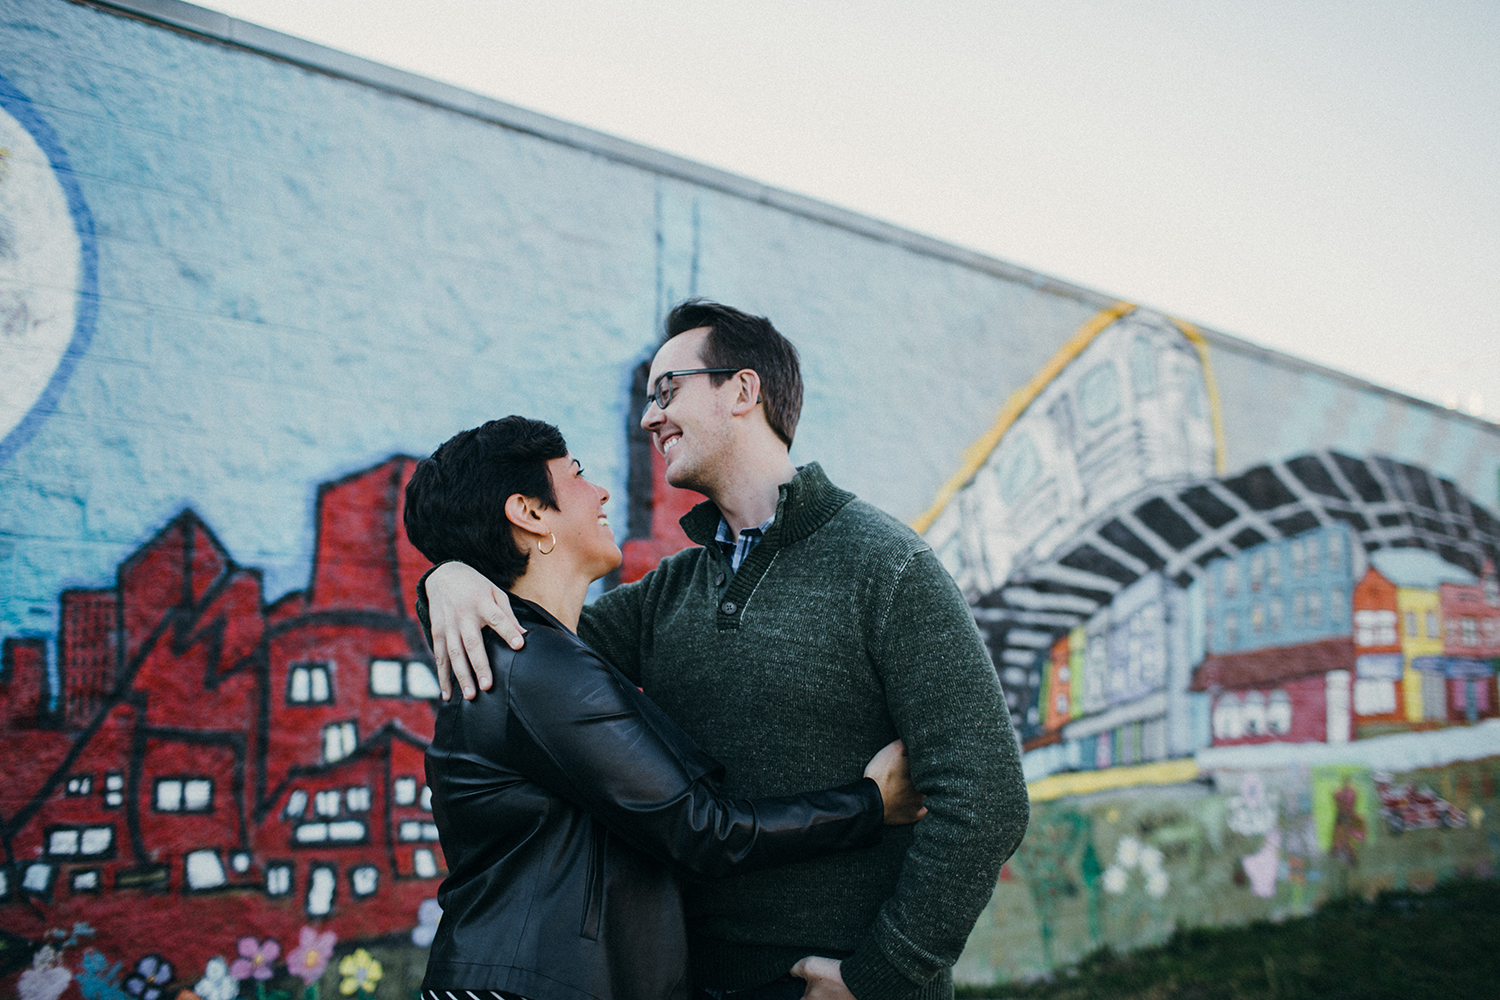 chicago_engagement_photos_logan_square_west_side_elearnor_mark (5 of 32).jpg